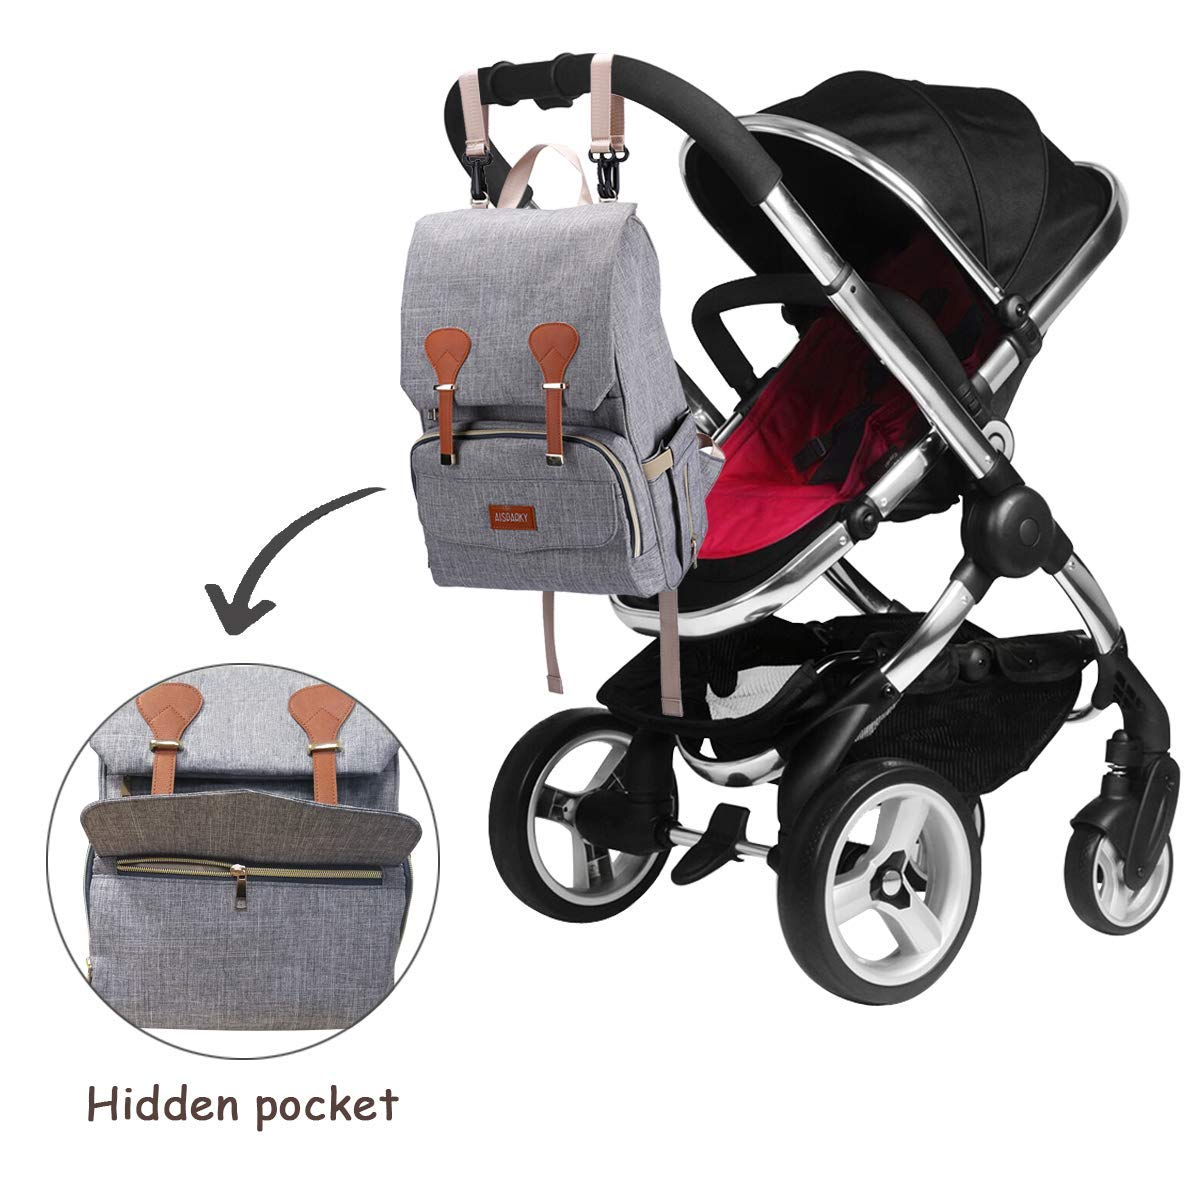 Multi-Function,Waterproof,Large Diaper Bag Backpack with Insulated Pocket for Mom/&Dad,Grey Baby Changing Bag,Rucksack Changing Bag,Baby Bag,Nappy Bag